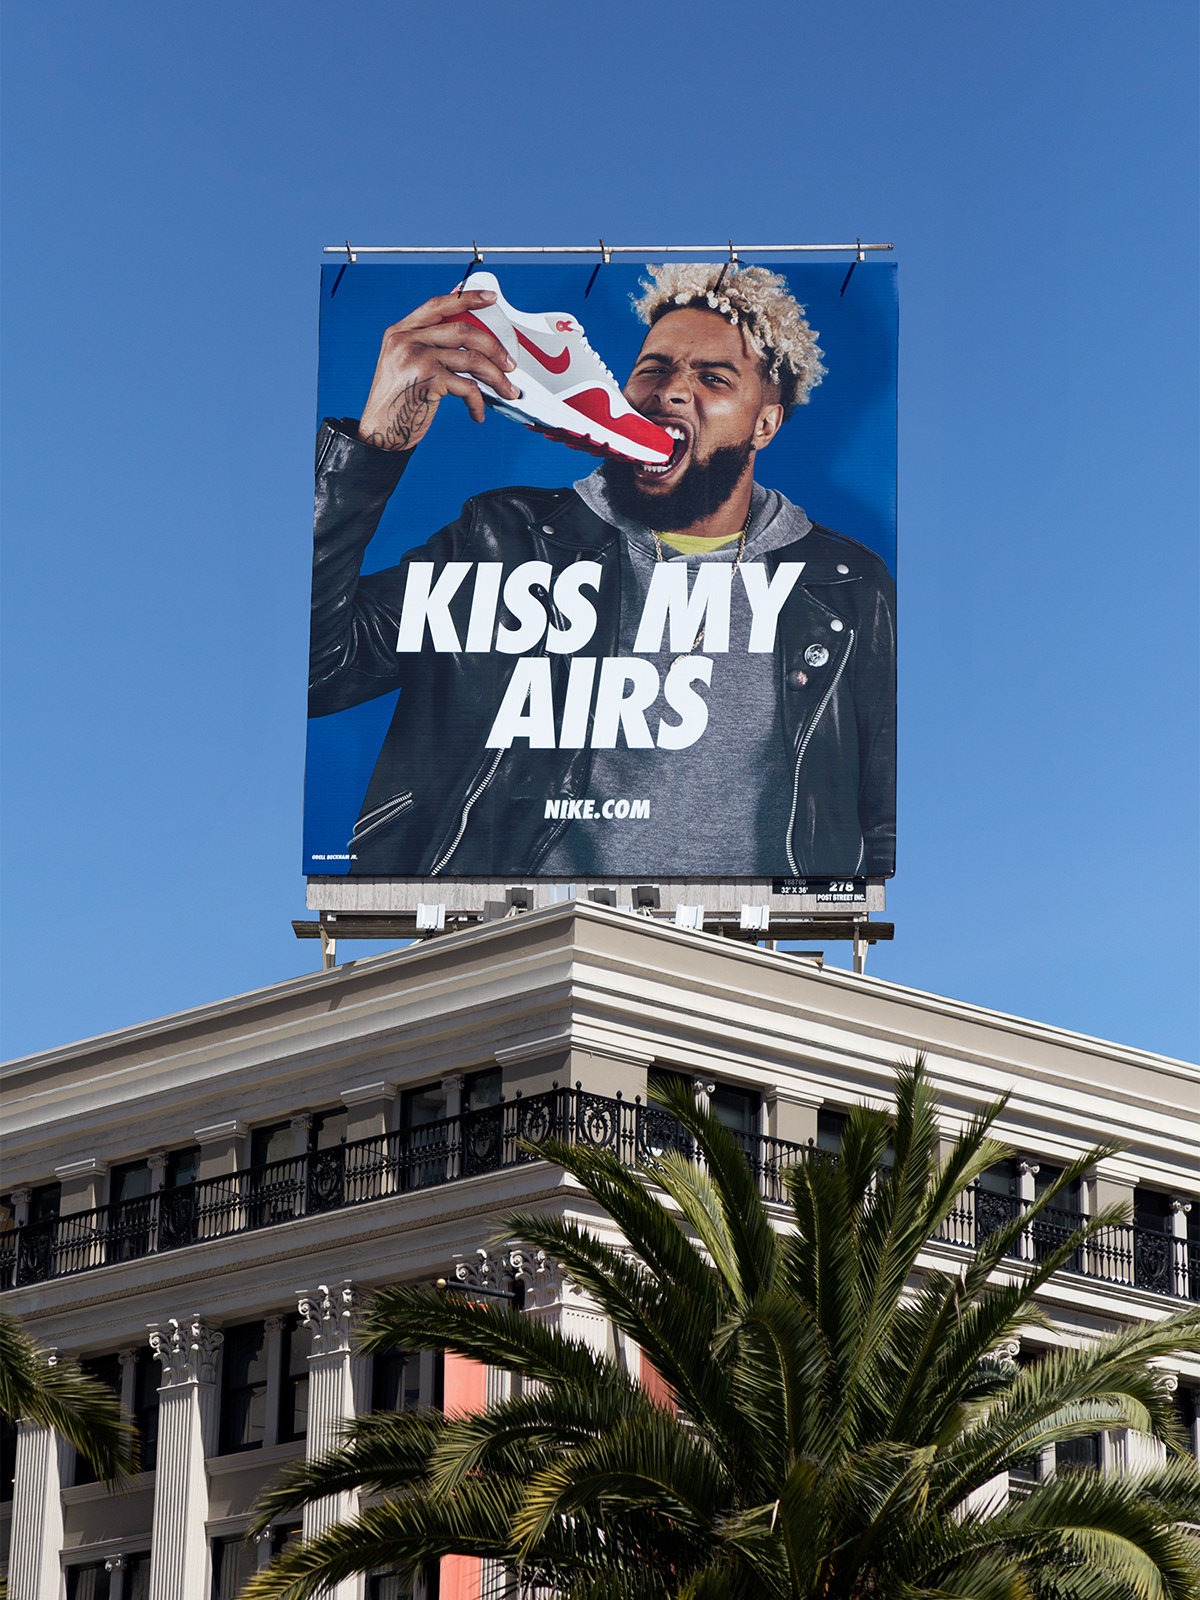 dff3015091 Nike Kiss My Airs Air Max Campaign created at COLLINS.